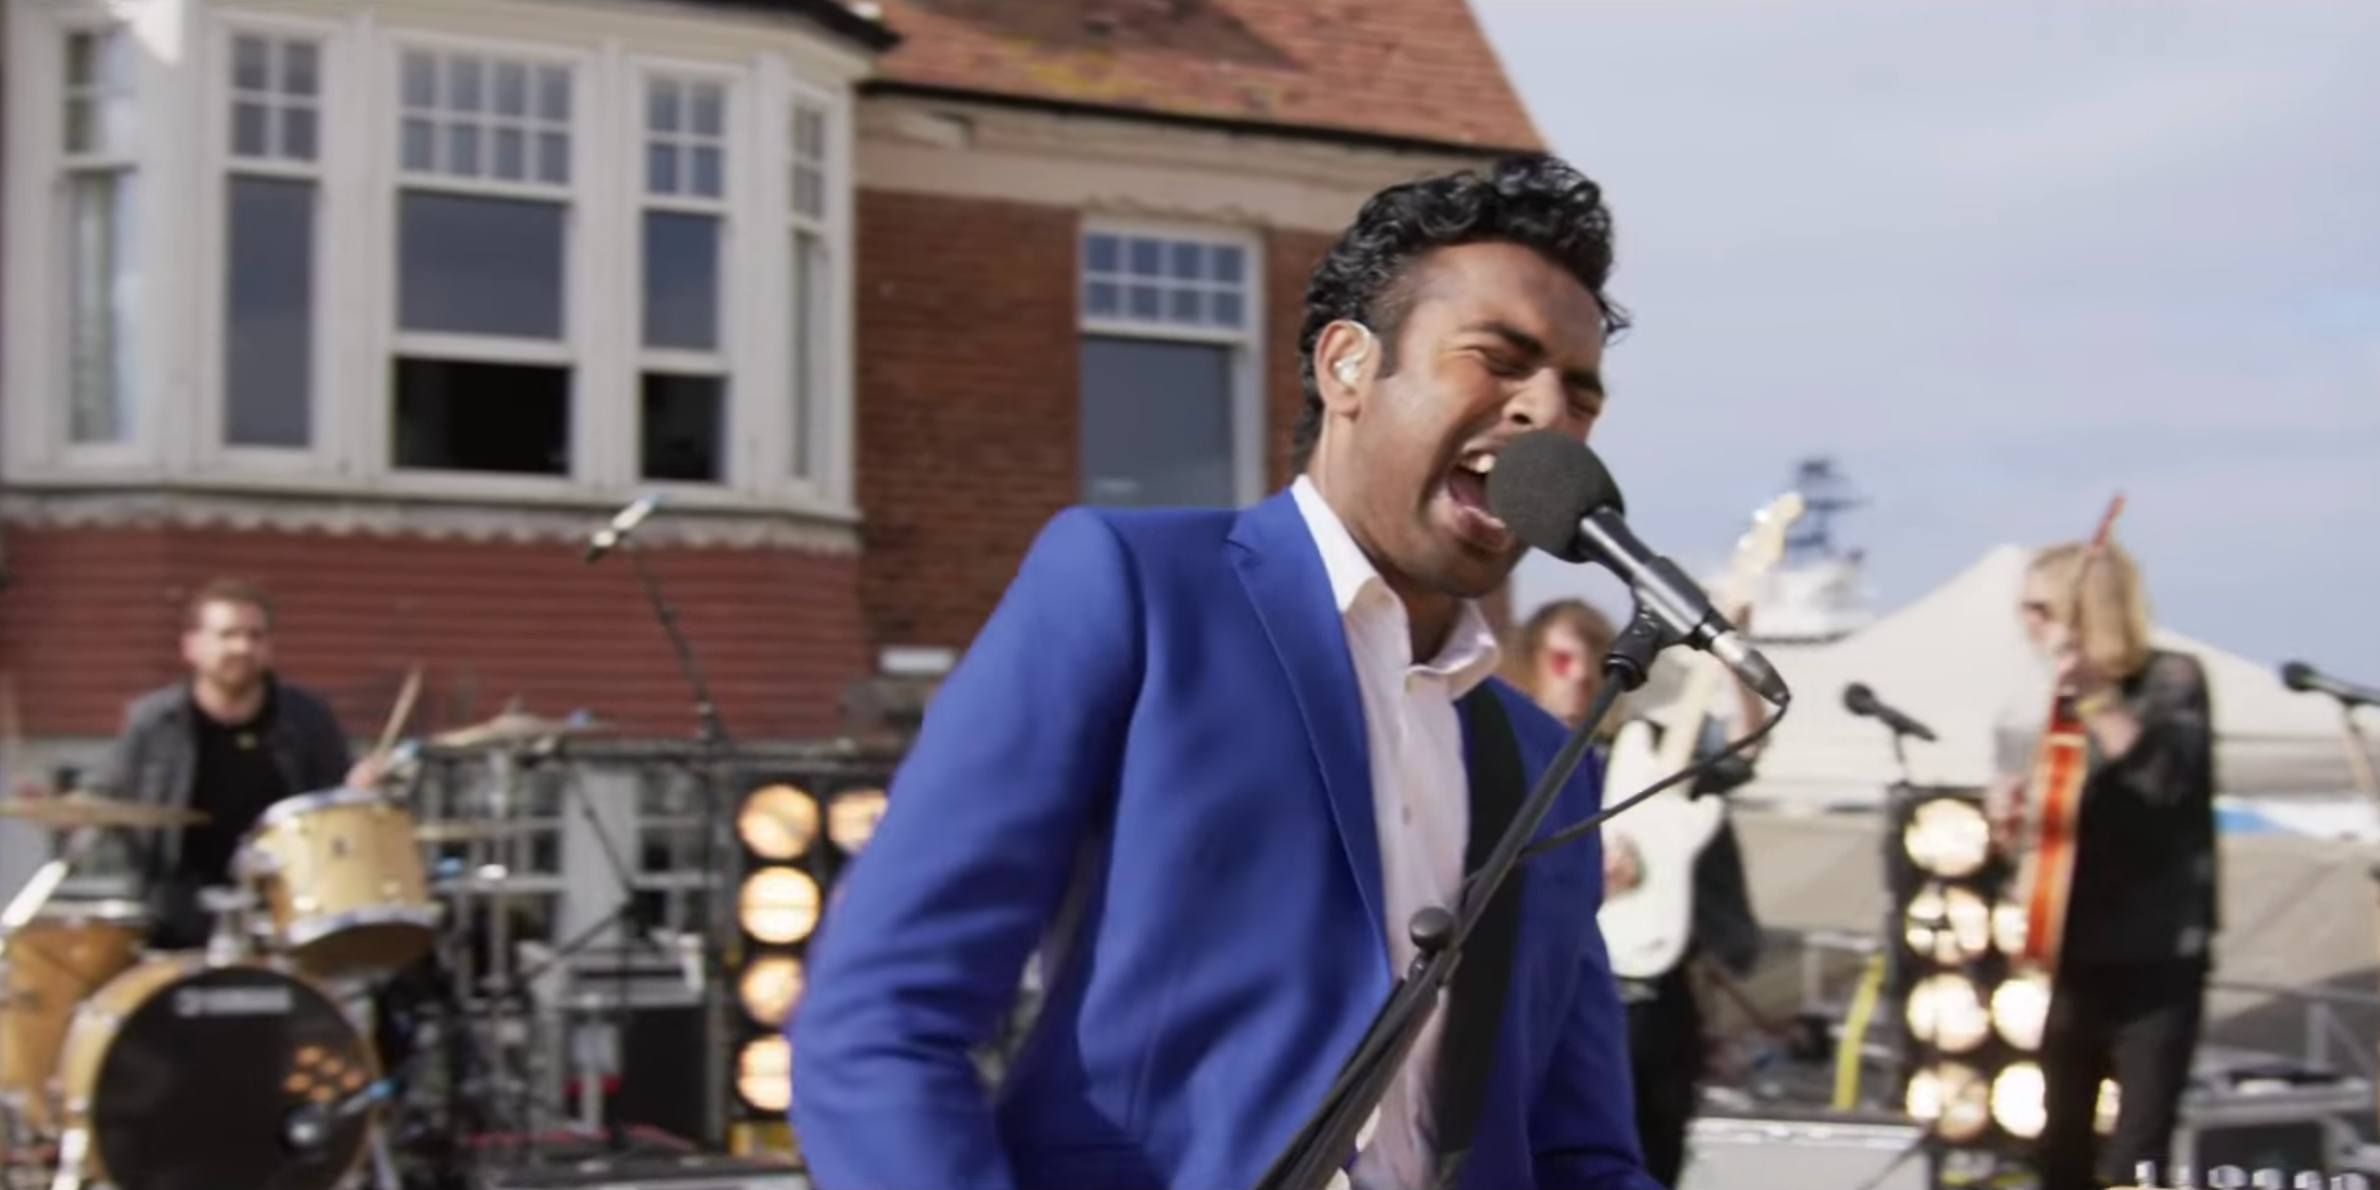 The first trailer for Danny Boyle's Beatles-inspired movie Yesterday has arrived – watch